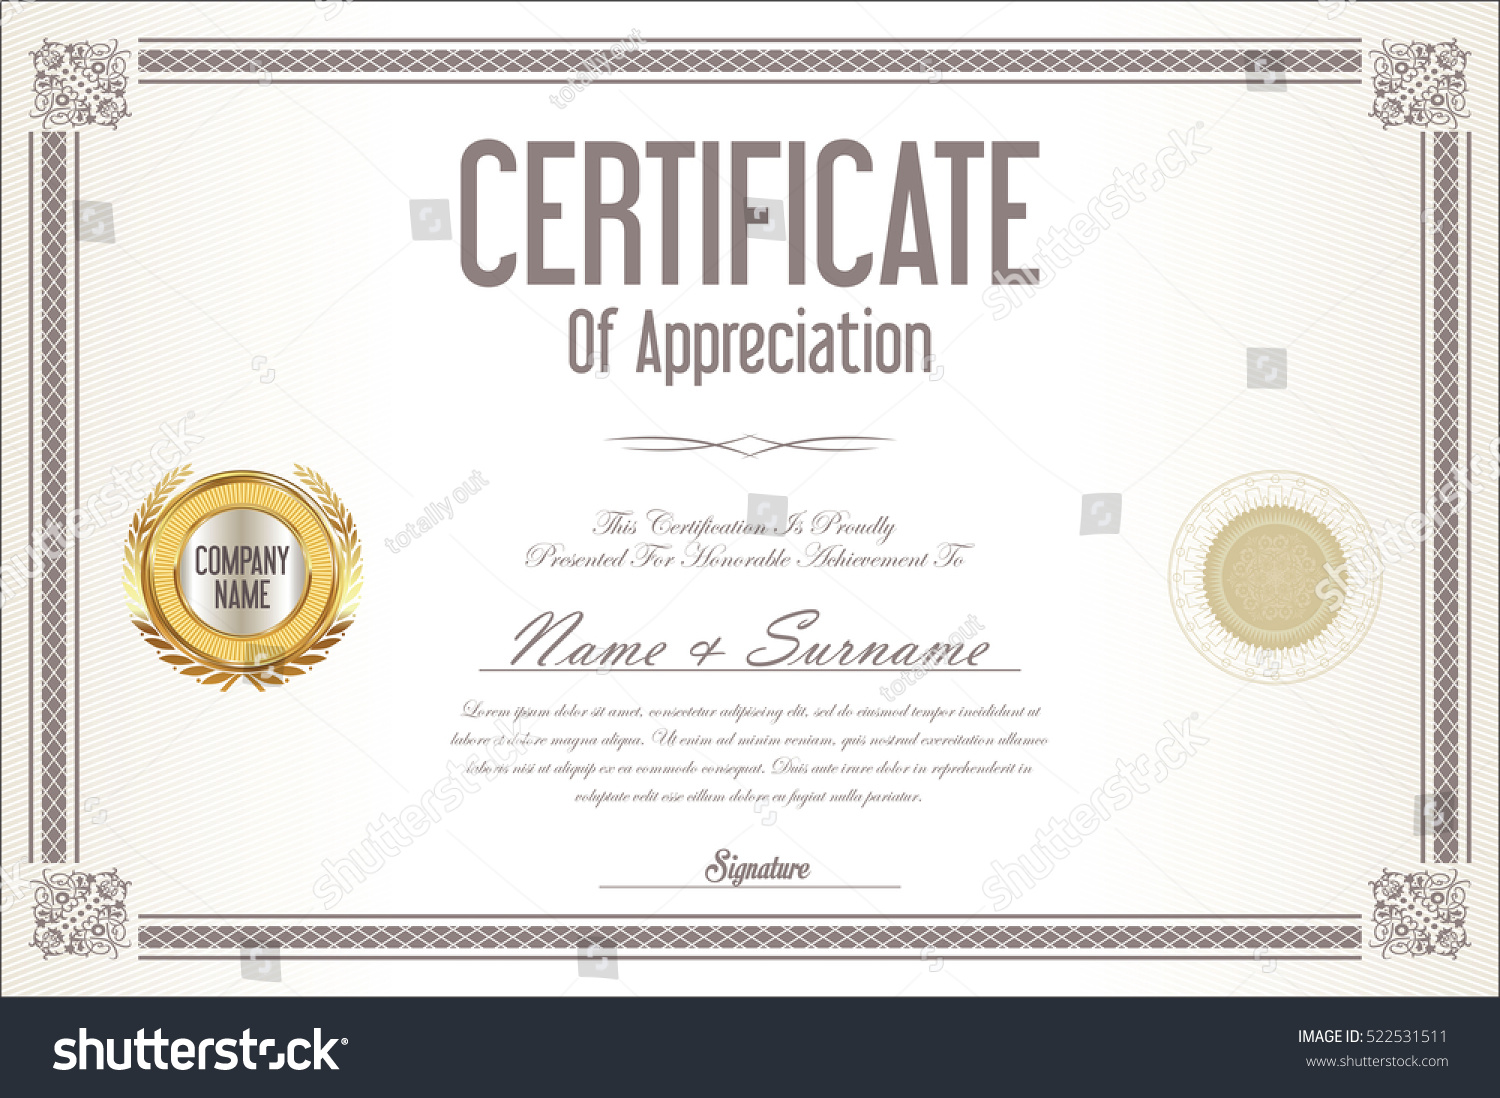 Certificate template retro design background stock vector certificate template retro design background xflitez Images